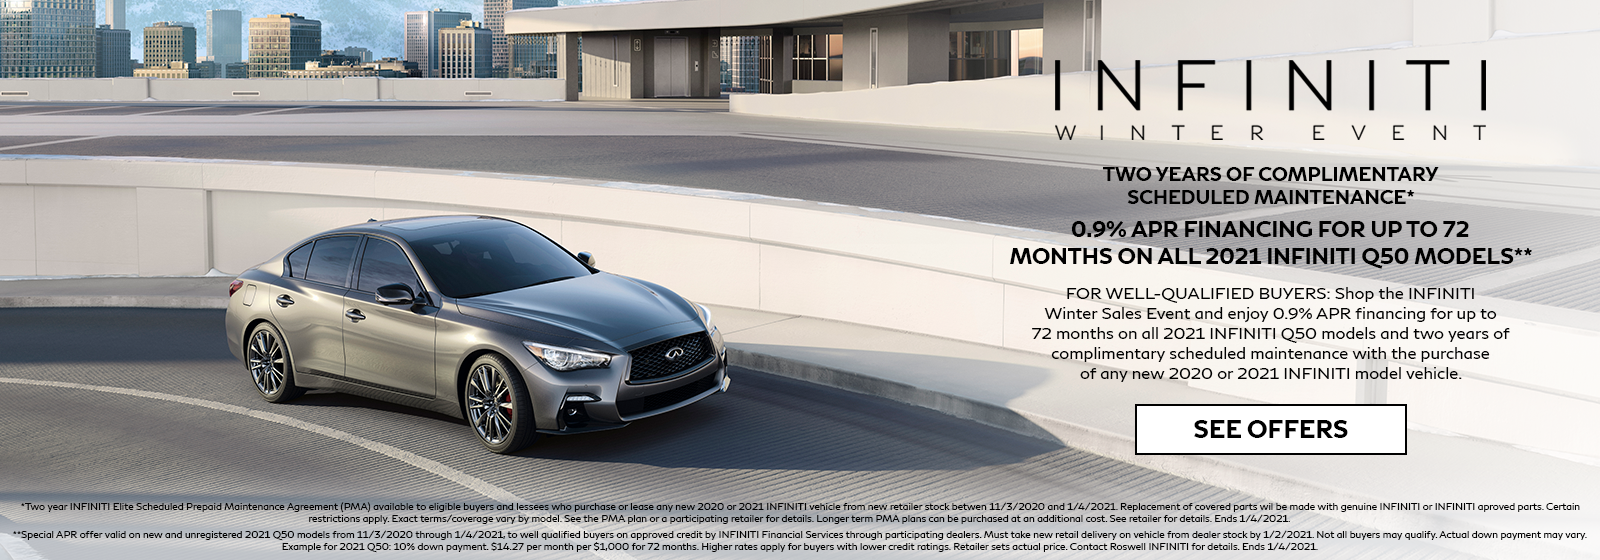 0.9% APR for 72 months on 2021 INFINITI Q50